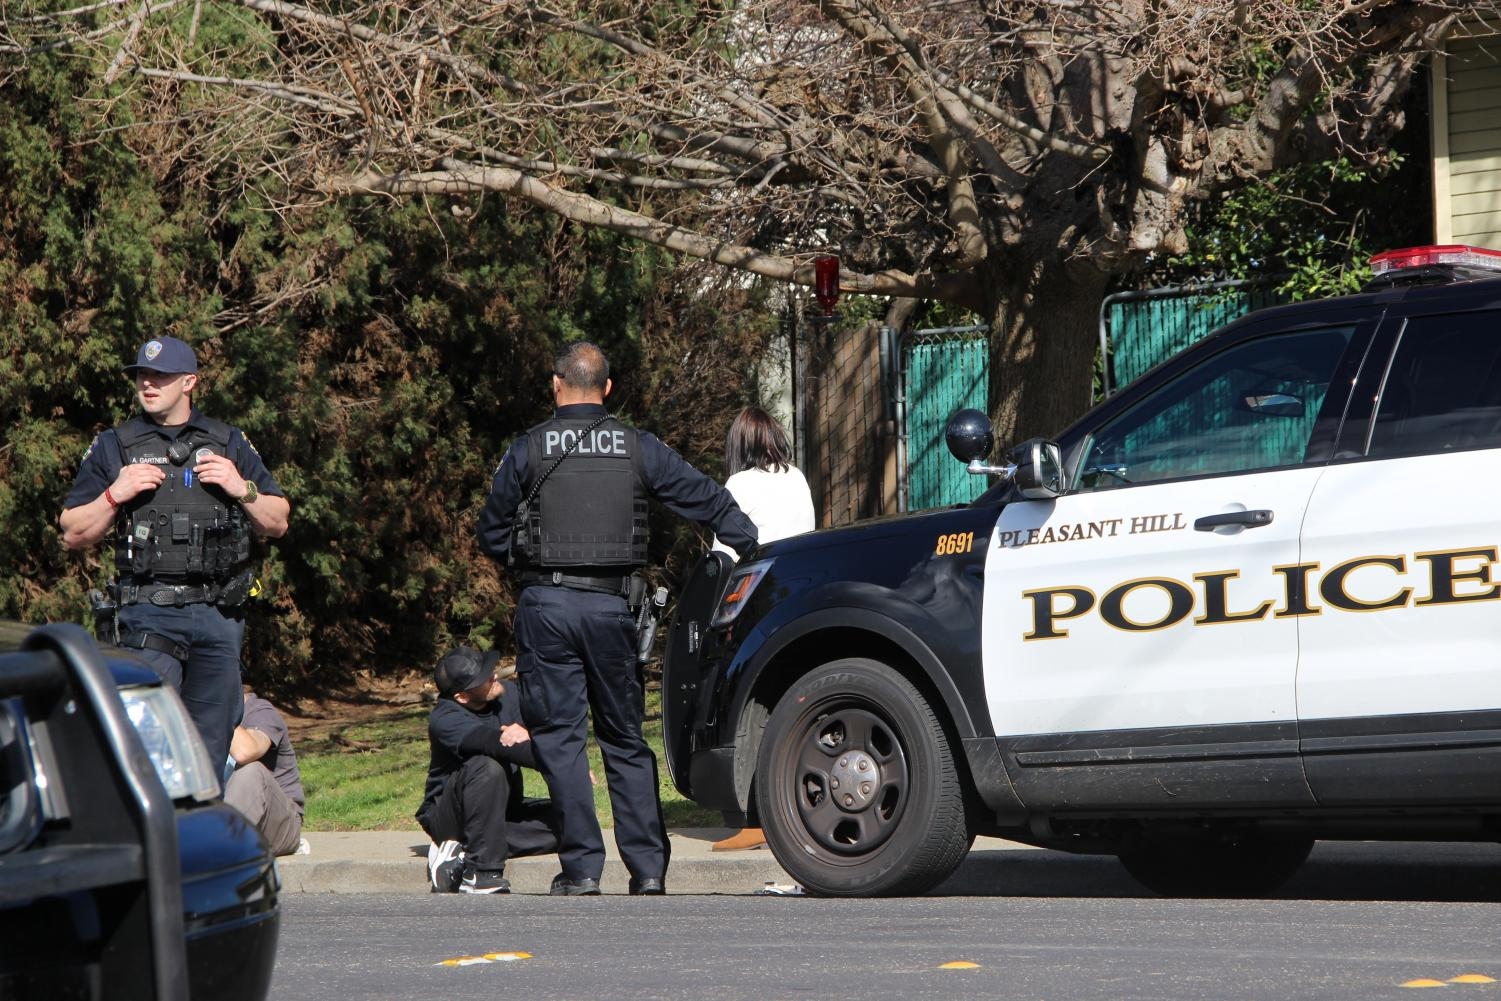 Police were spotted nearby campus on Feb. 6 on the 2100 block of Norse Drive.(Gavin Rock/The Inquirer).